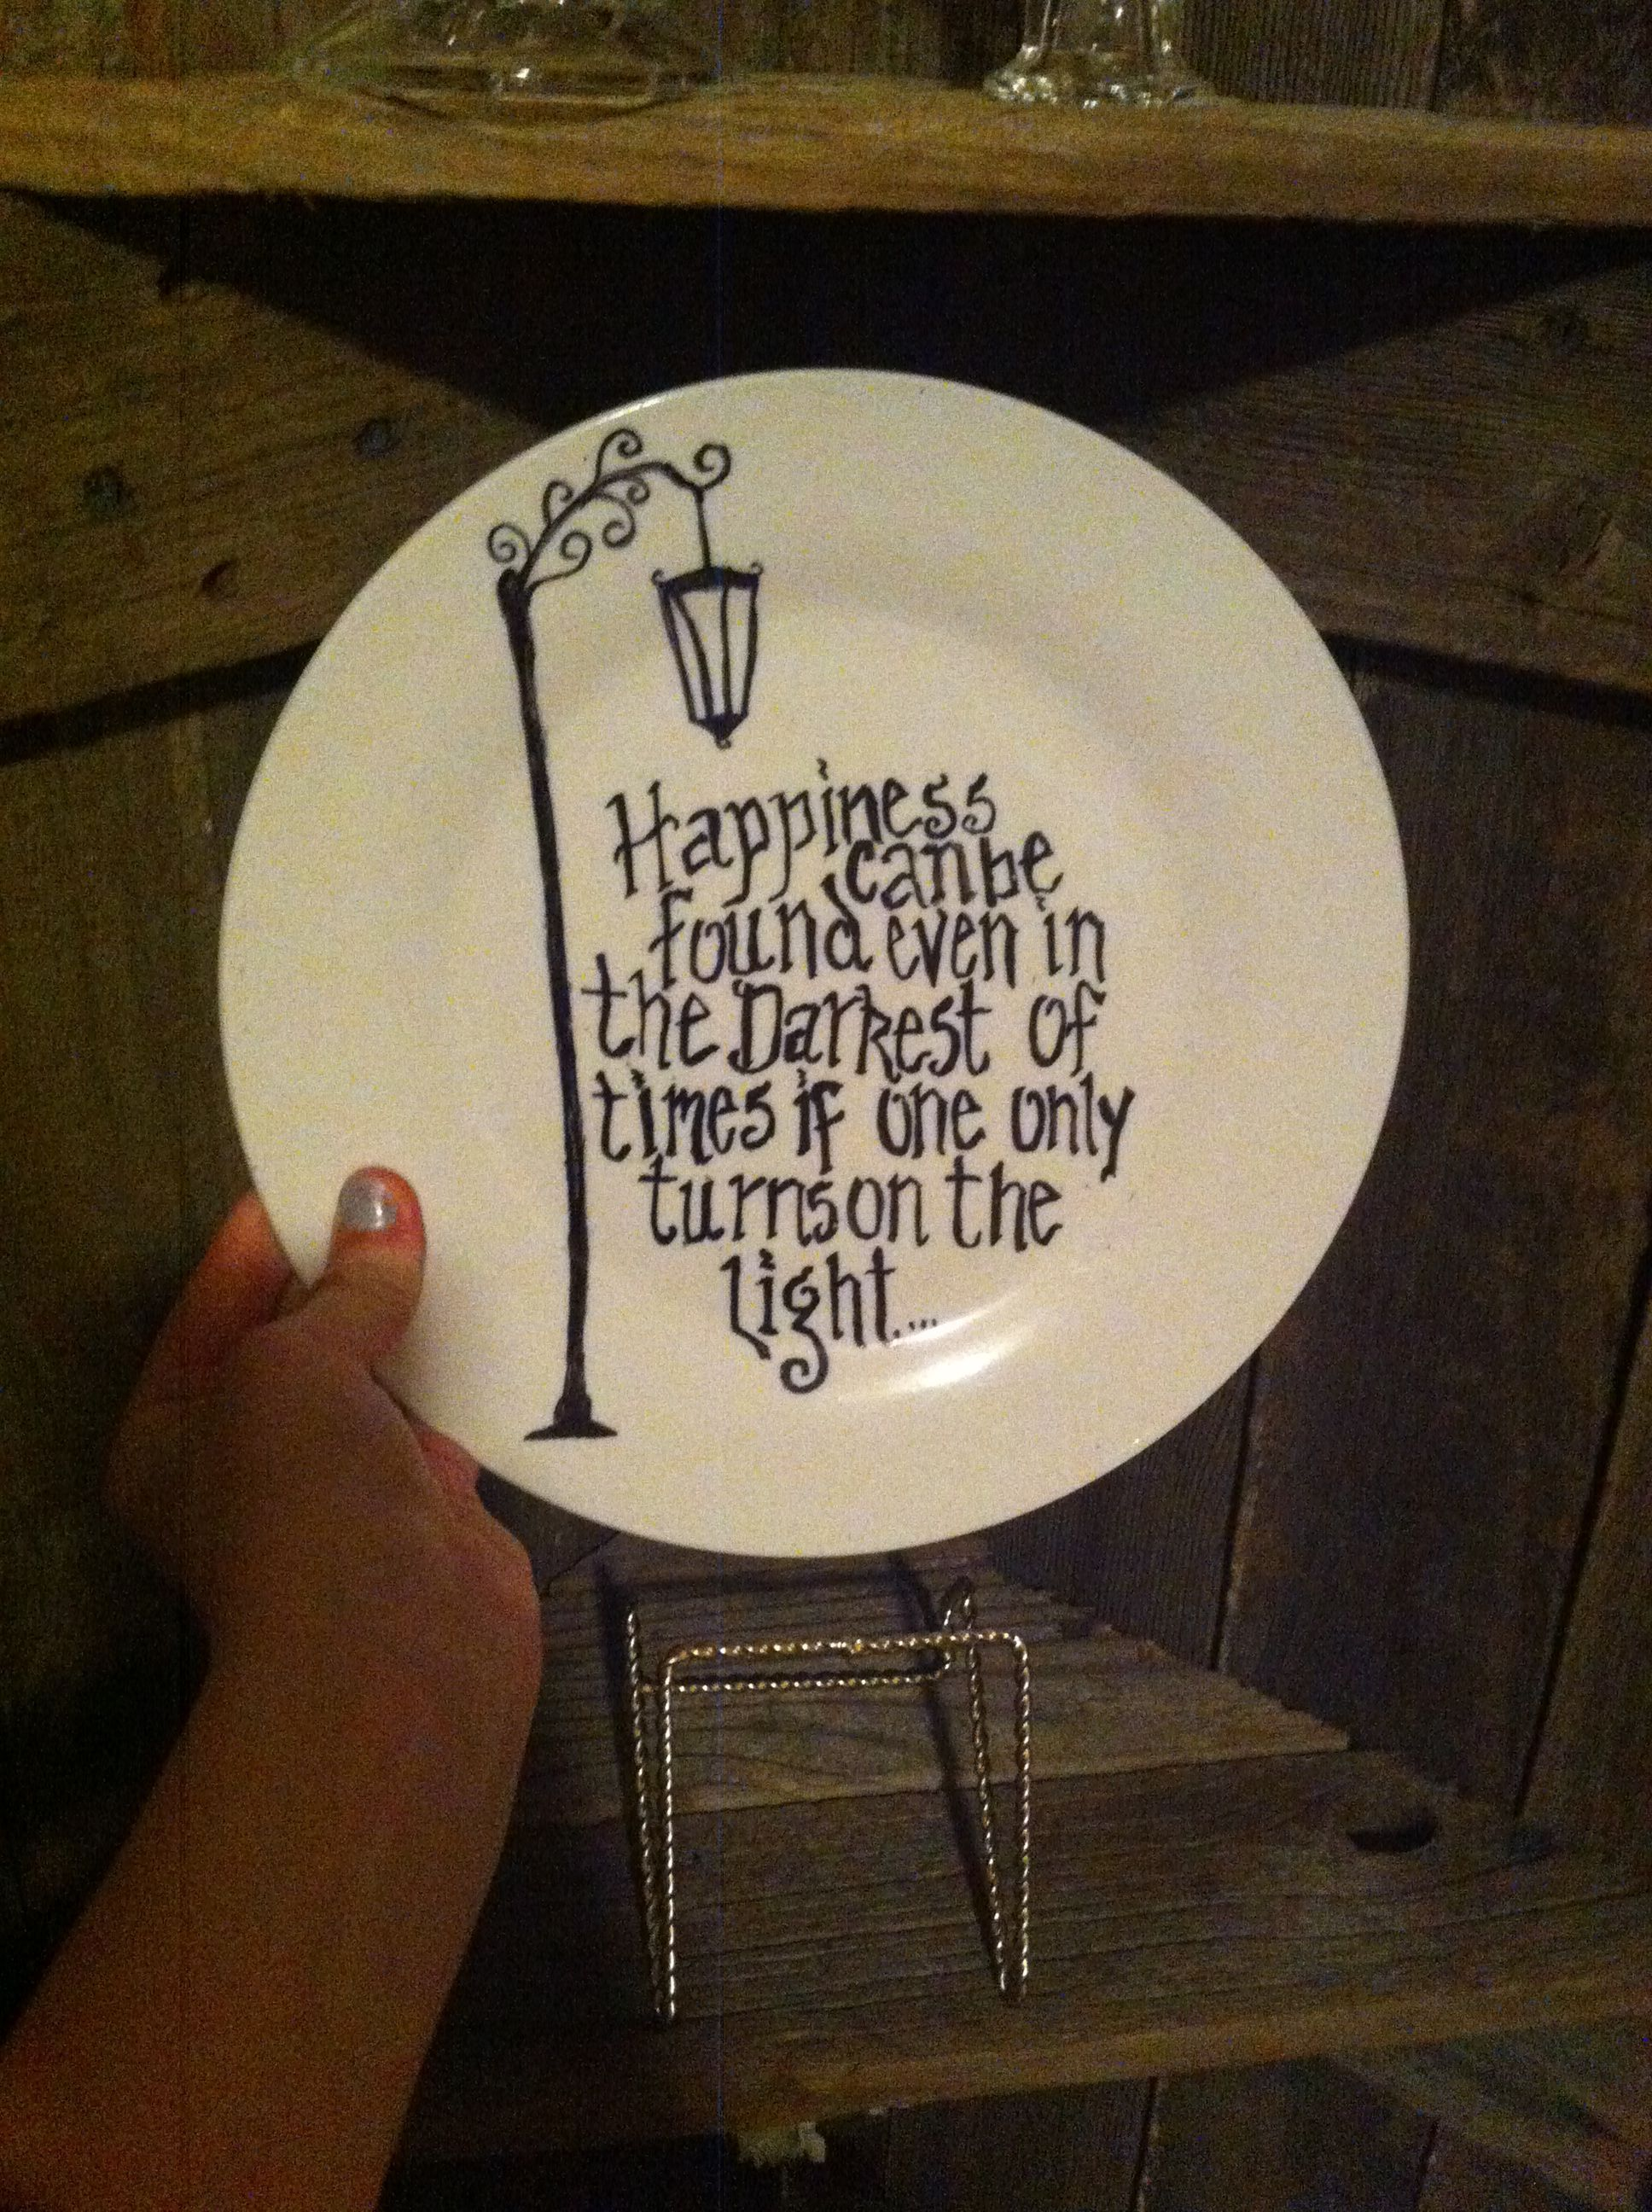 #permanentharry #sharpie #plates #potter #course #quote #bake #oven #make #the #on #in #to #ofSharpie on plates, bake in the oven to make permanent...Harry Potter quote of course(; #sharpieplates #permanentharry #sharpie #plates #potter #course #quote #bake #oven #make #the #on #in #to #ofSharpie on plates, bake in the oven to make permanent...Harry Potter quote of course(; #sharpieplates